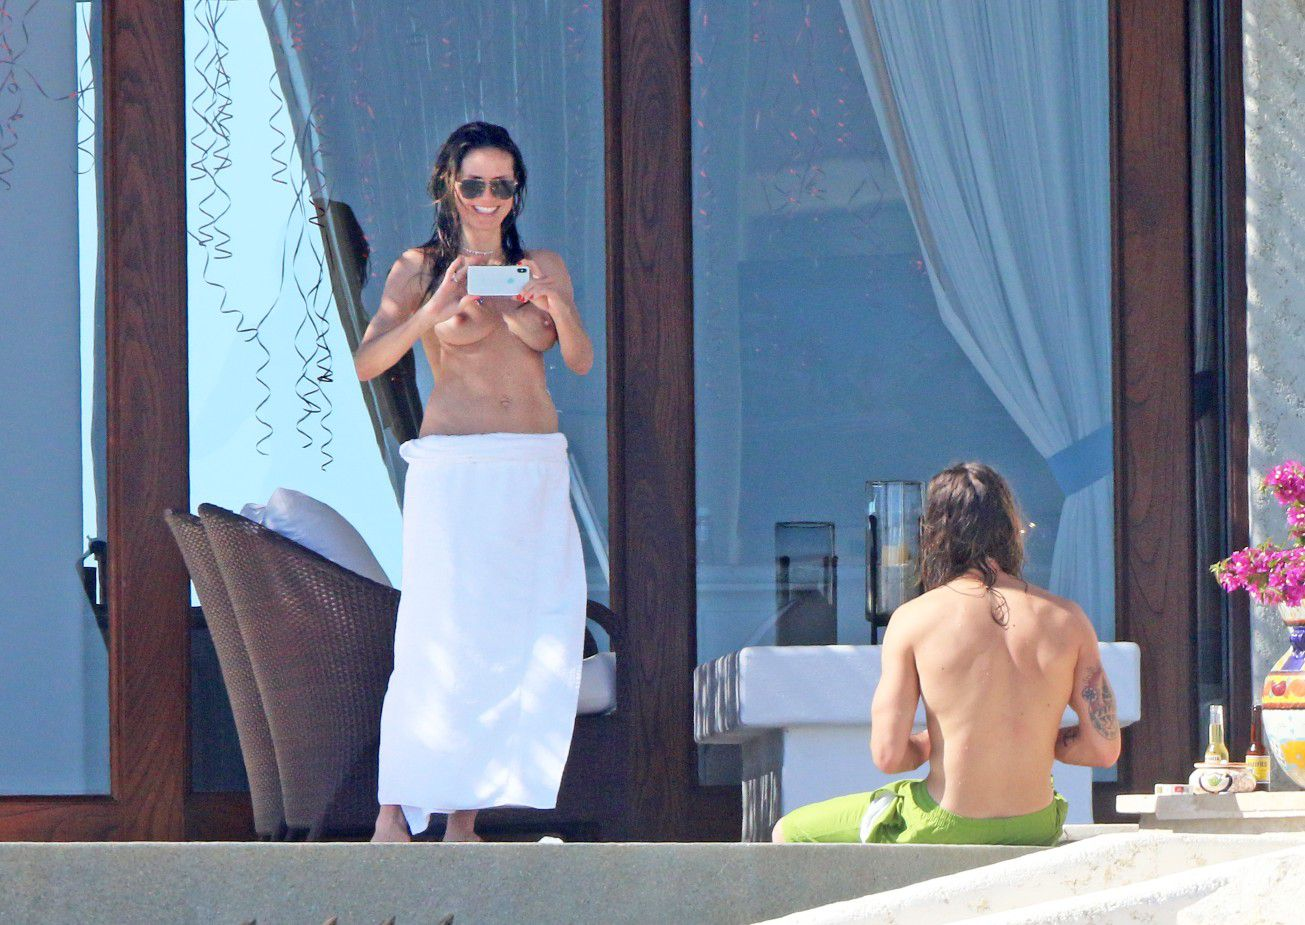 heidi-klum-topless-candids-in-cabo-san-lucas-mexico-6197